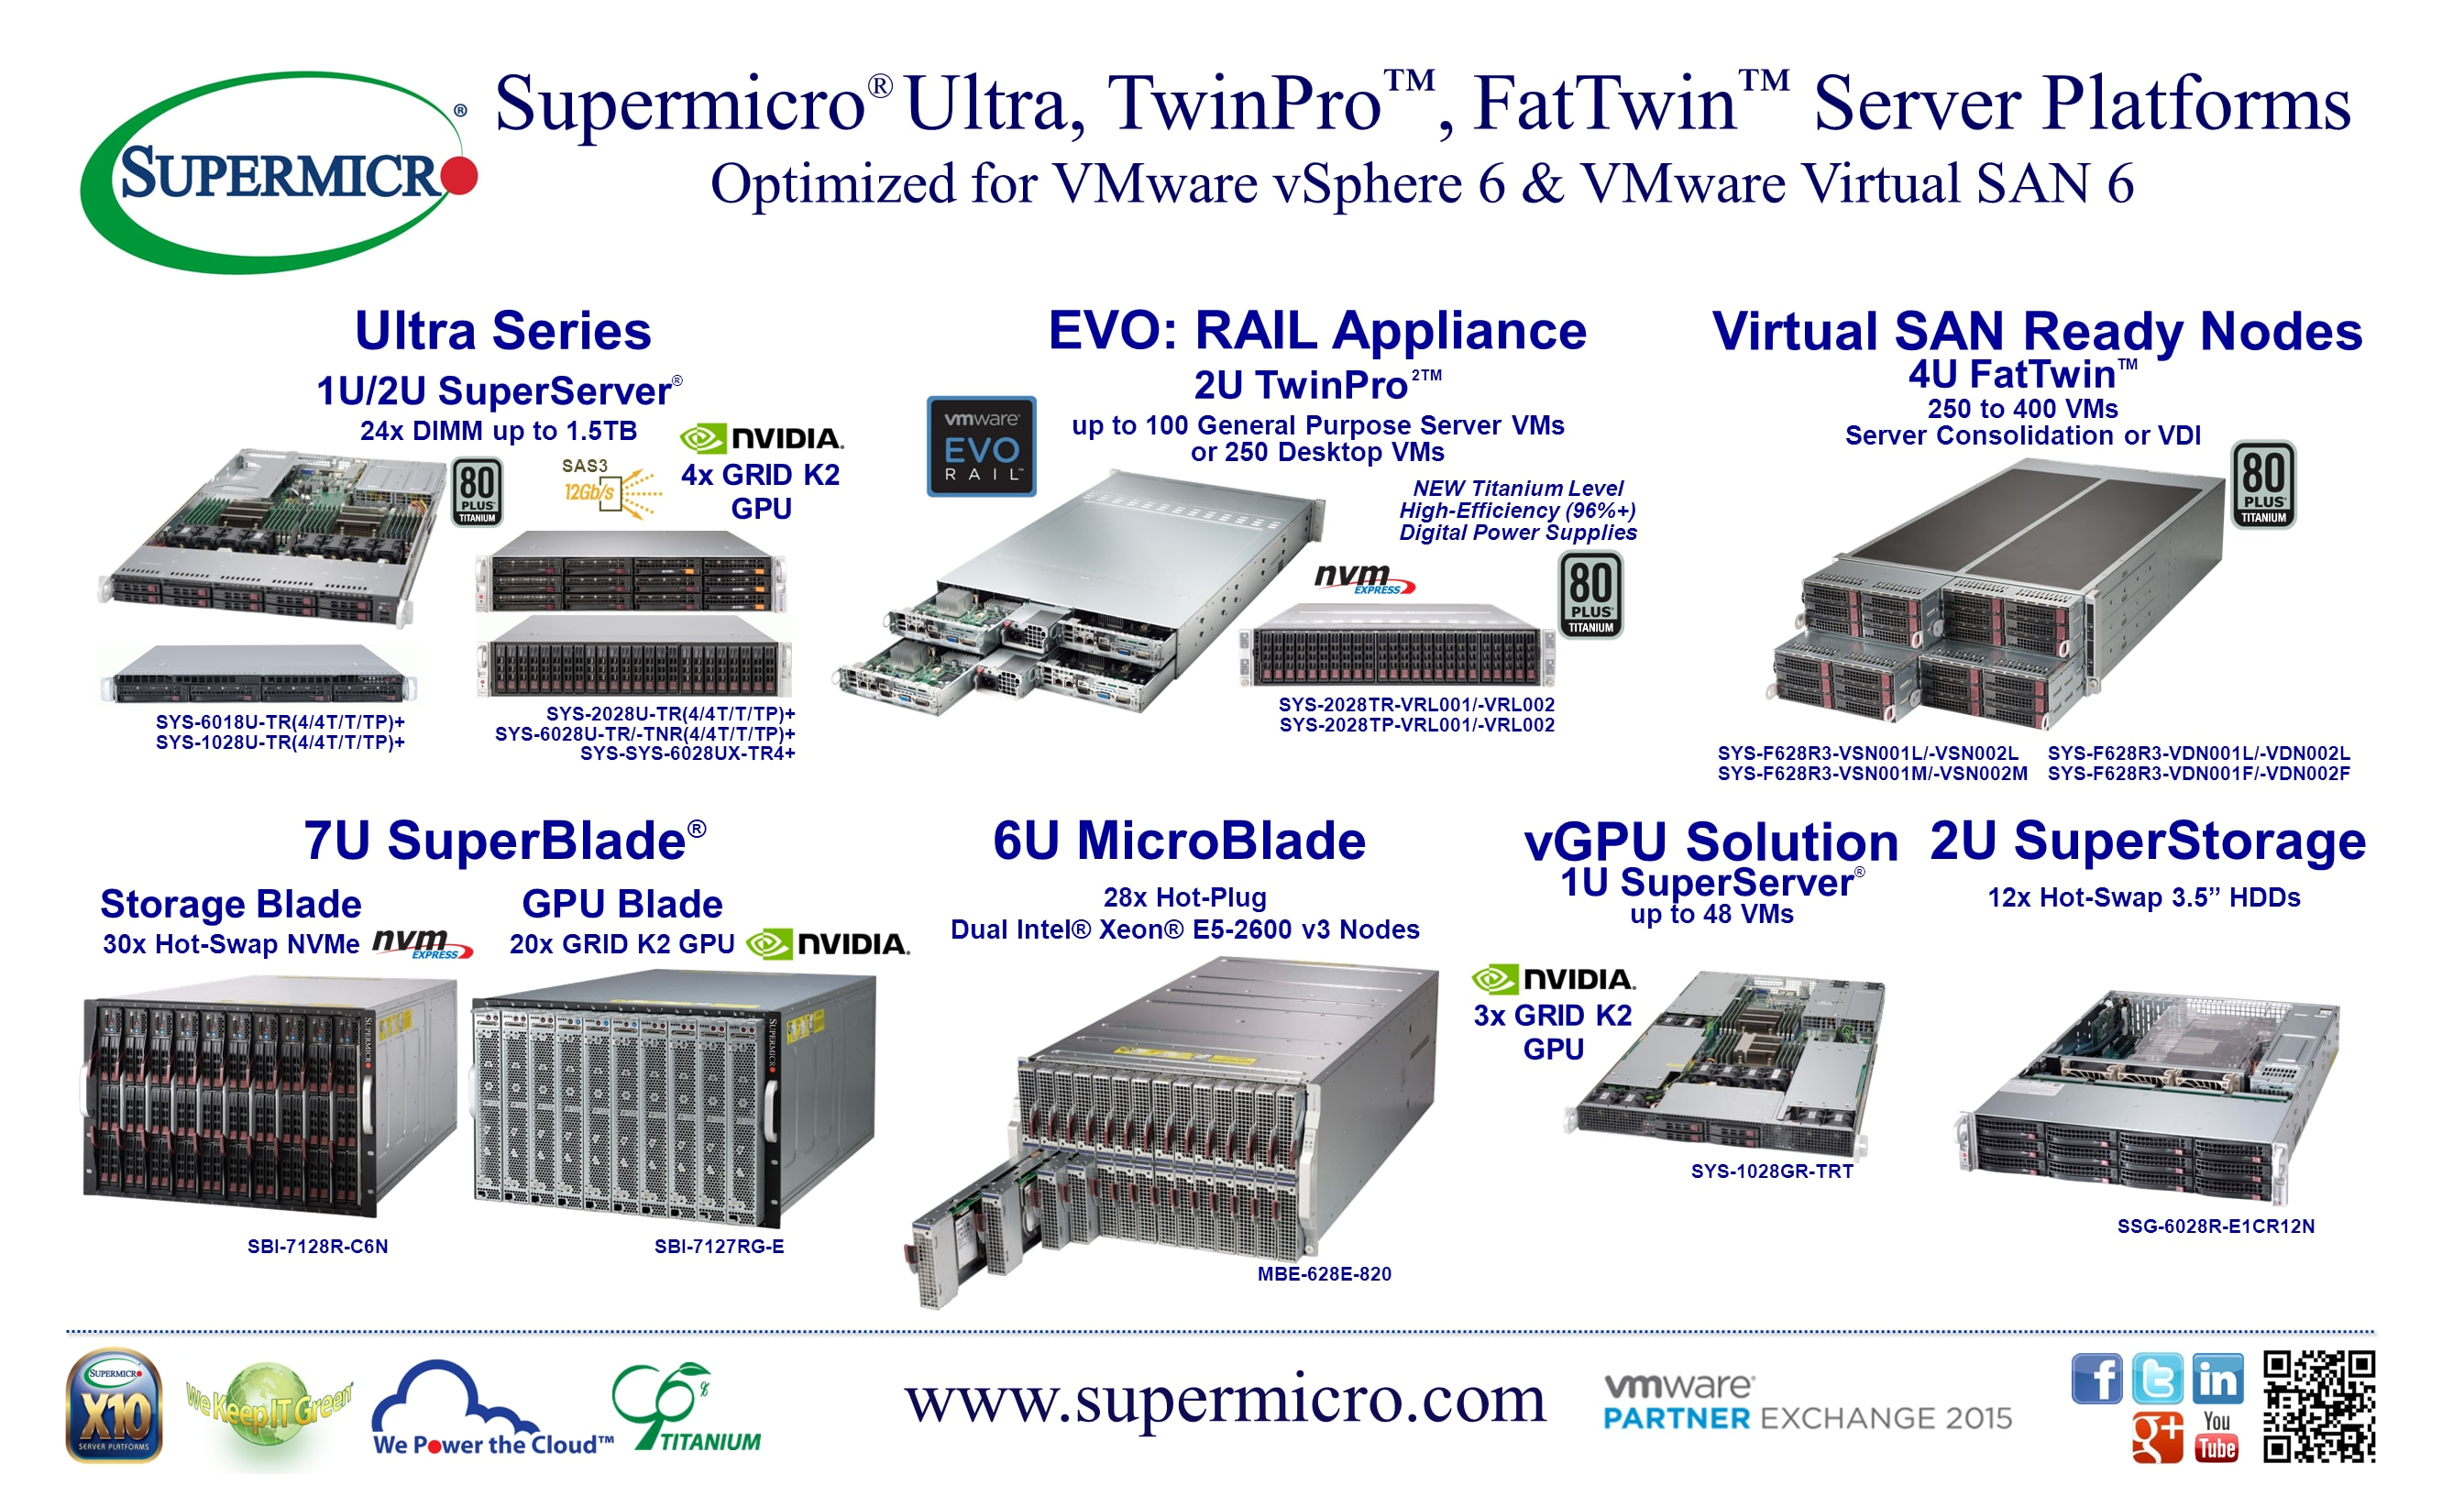 Supermicro | News | Supermicro® Highlights Ultra, TwinPro, and